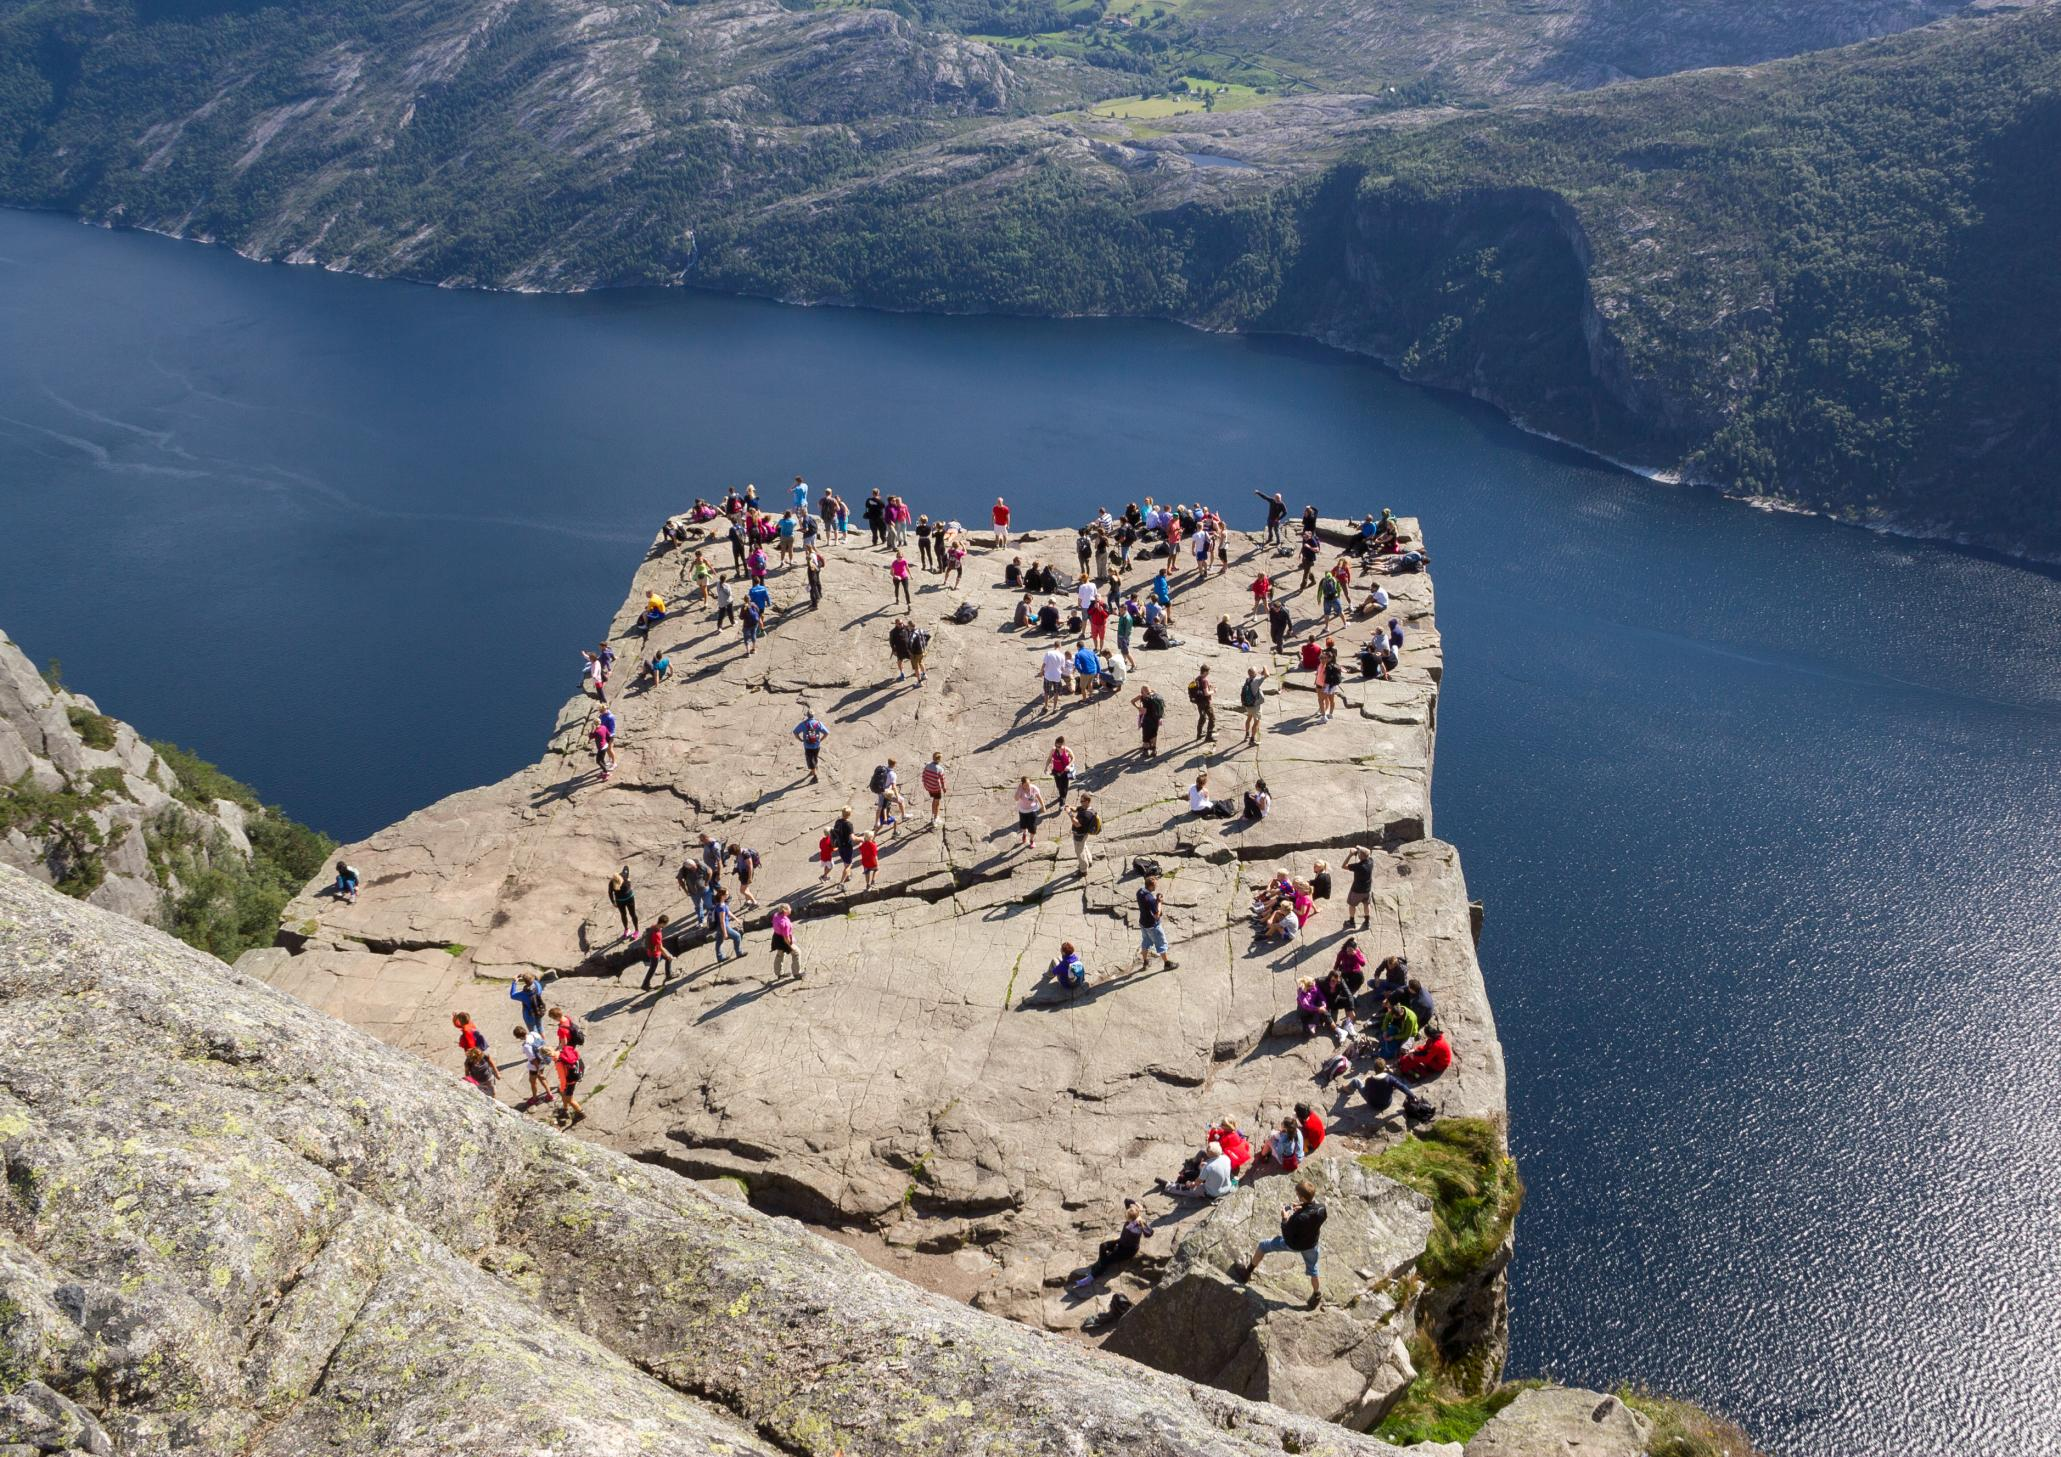 "<p>The 200,000 or so tourists who visit this dangerous-looking hangout spot in Norway each year don't seem perturbed by its 1,970ft drop into a fjord below but Preikestolen, also known as Pulpit Rock, is as dangerous as cliffs come. There is no safety railing on the edge of the cliff but there have been no tourist fatalities and authorities say they opted not to install a fence as it would harm the natural beauty and could even encourage dangerous behaviour. They say they ""cannot fence in all nature in this country"" and Norwegians, who are more accustomed to ""dangerous nature,"" support this.</p>"